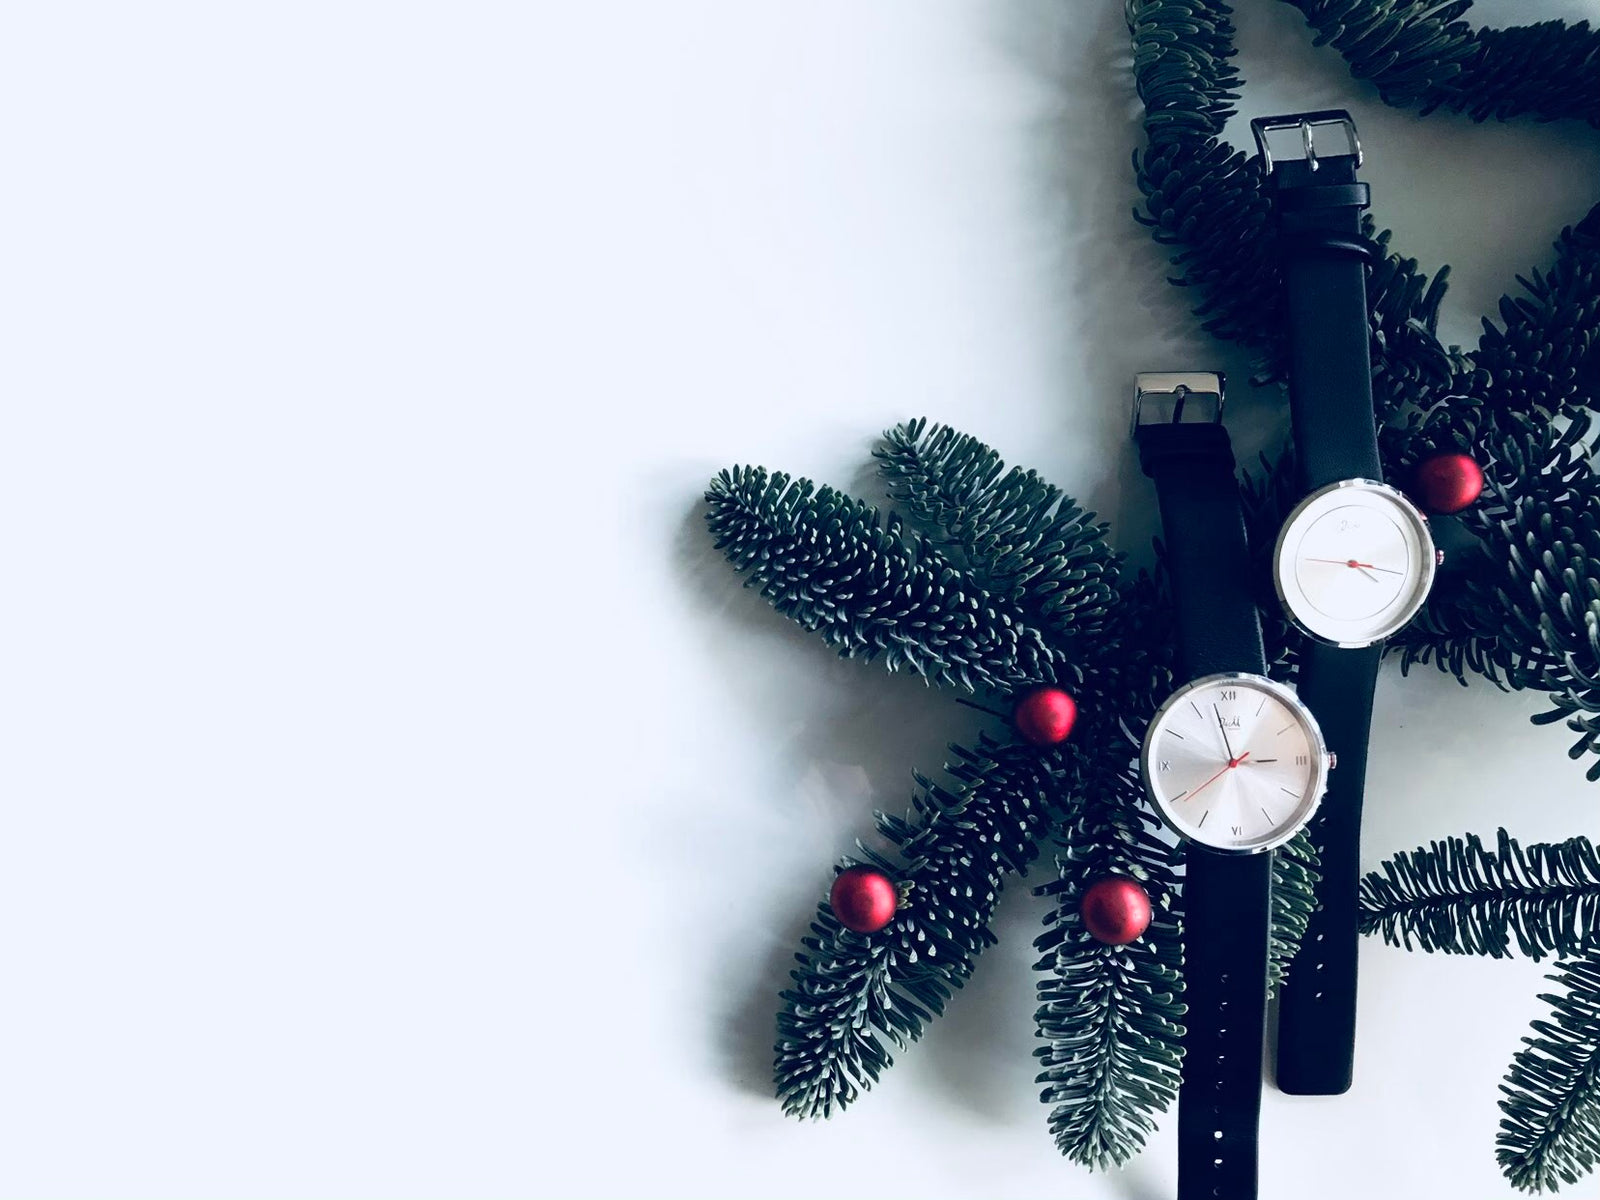 Christmastime with J&M watches